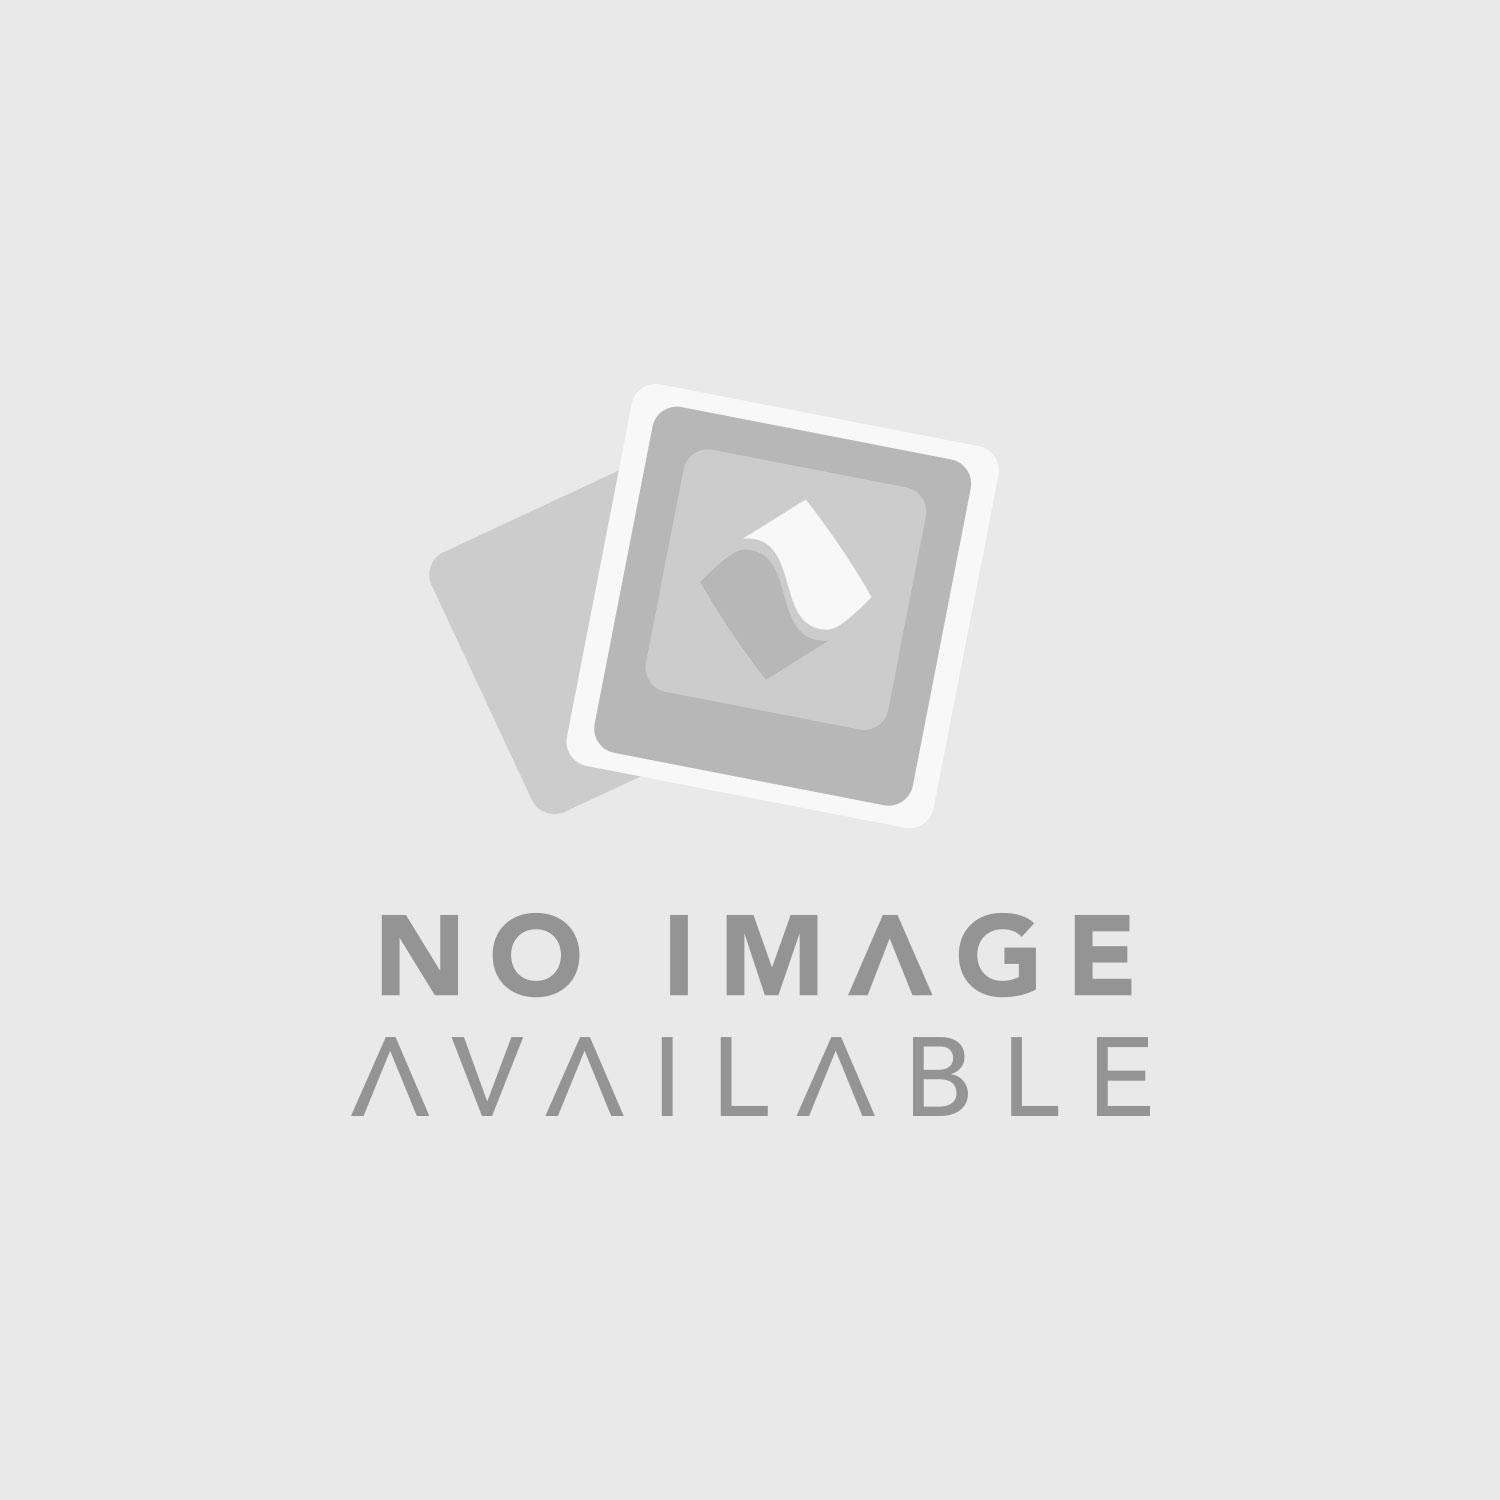 Shure SRH1840 Open-Back Over-Ear Headphones (New Packaging)